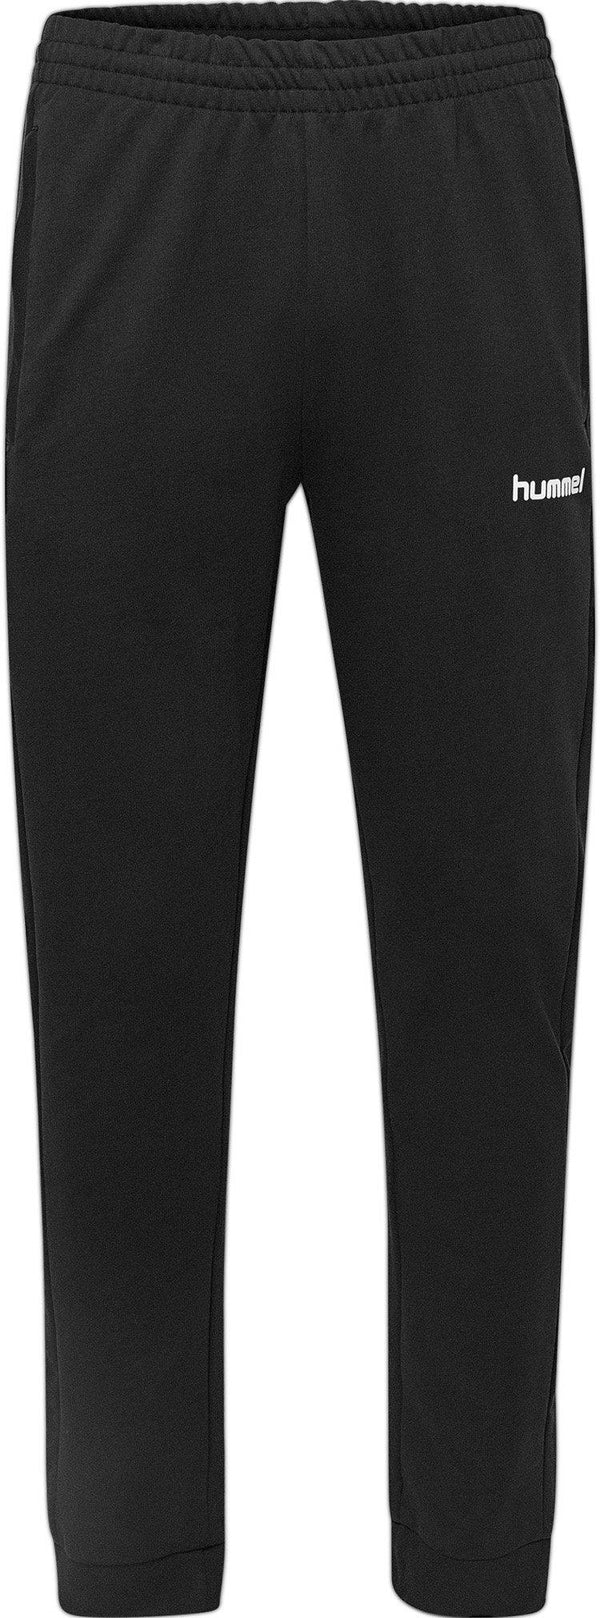 hummel hmlGo Cotton Pants-Apparel-Soccer Source